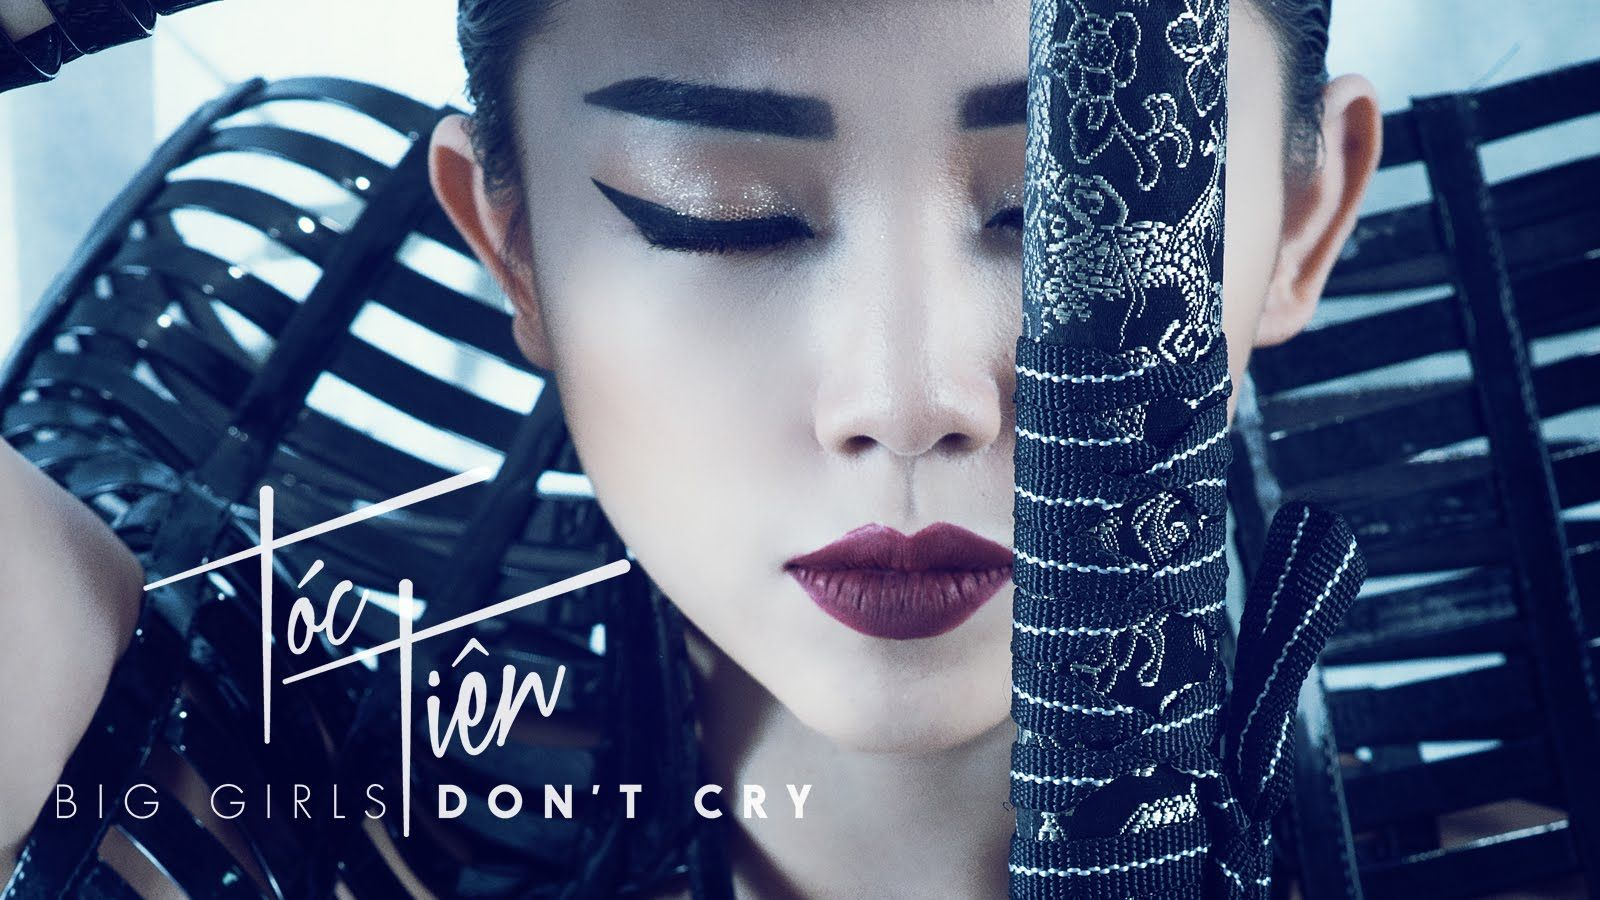 BIG GIRLS DONT CRY [] [TLVR RMX] [] TÓC TIÊN |[] official teaser [16+] [] [37s] [] features explicit content [] [] official MV https://www.youtube.com/watch?v=tIevzRhfkMg [] [] [] BEAT [][] CELEBRATION [] official MV https://www.youtube.com/watch?v=oOLdCPhRVHo [] [] []